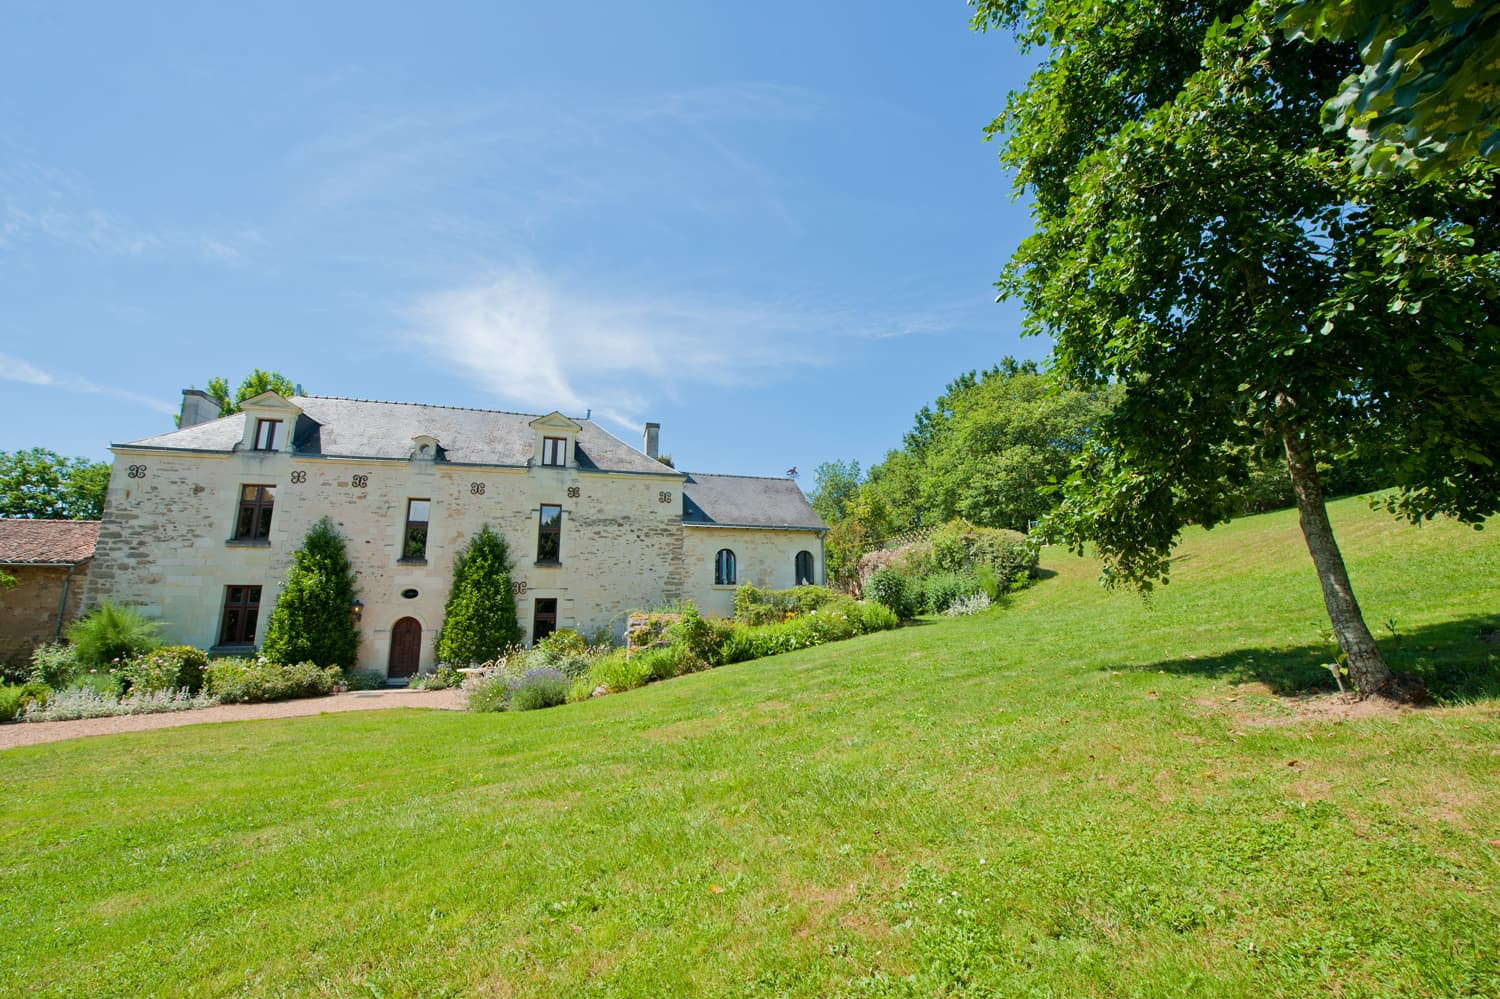 Holiday home with private pool and countryside setting in the Loire Valley | Manoir Coteaux